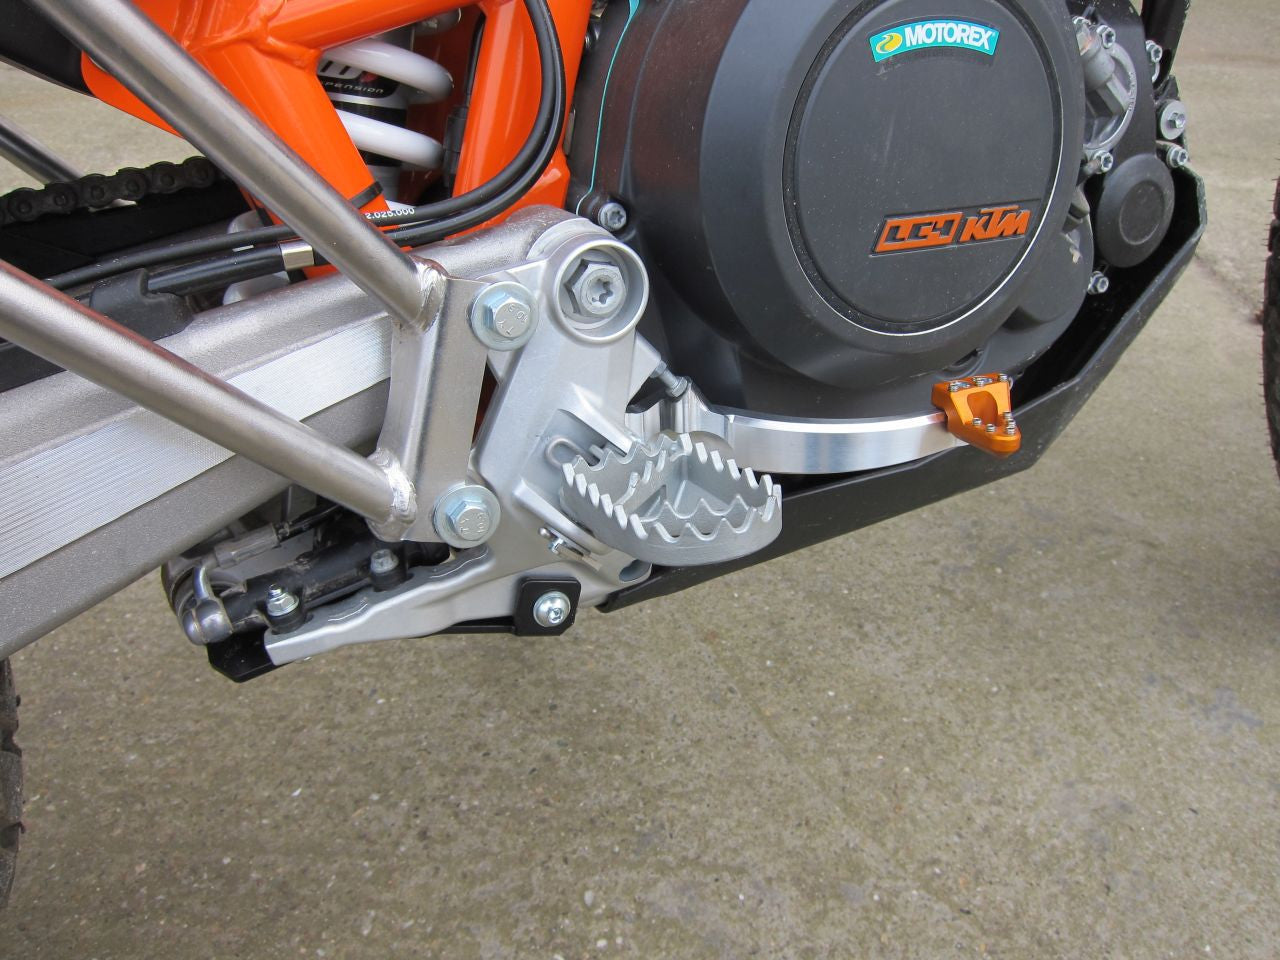 Aftermarket brake pedal for KTM 690 Enduro R - Perun moto